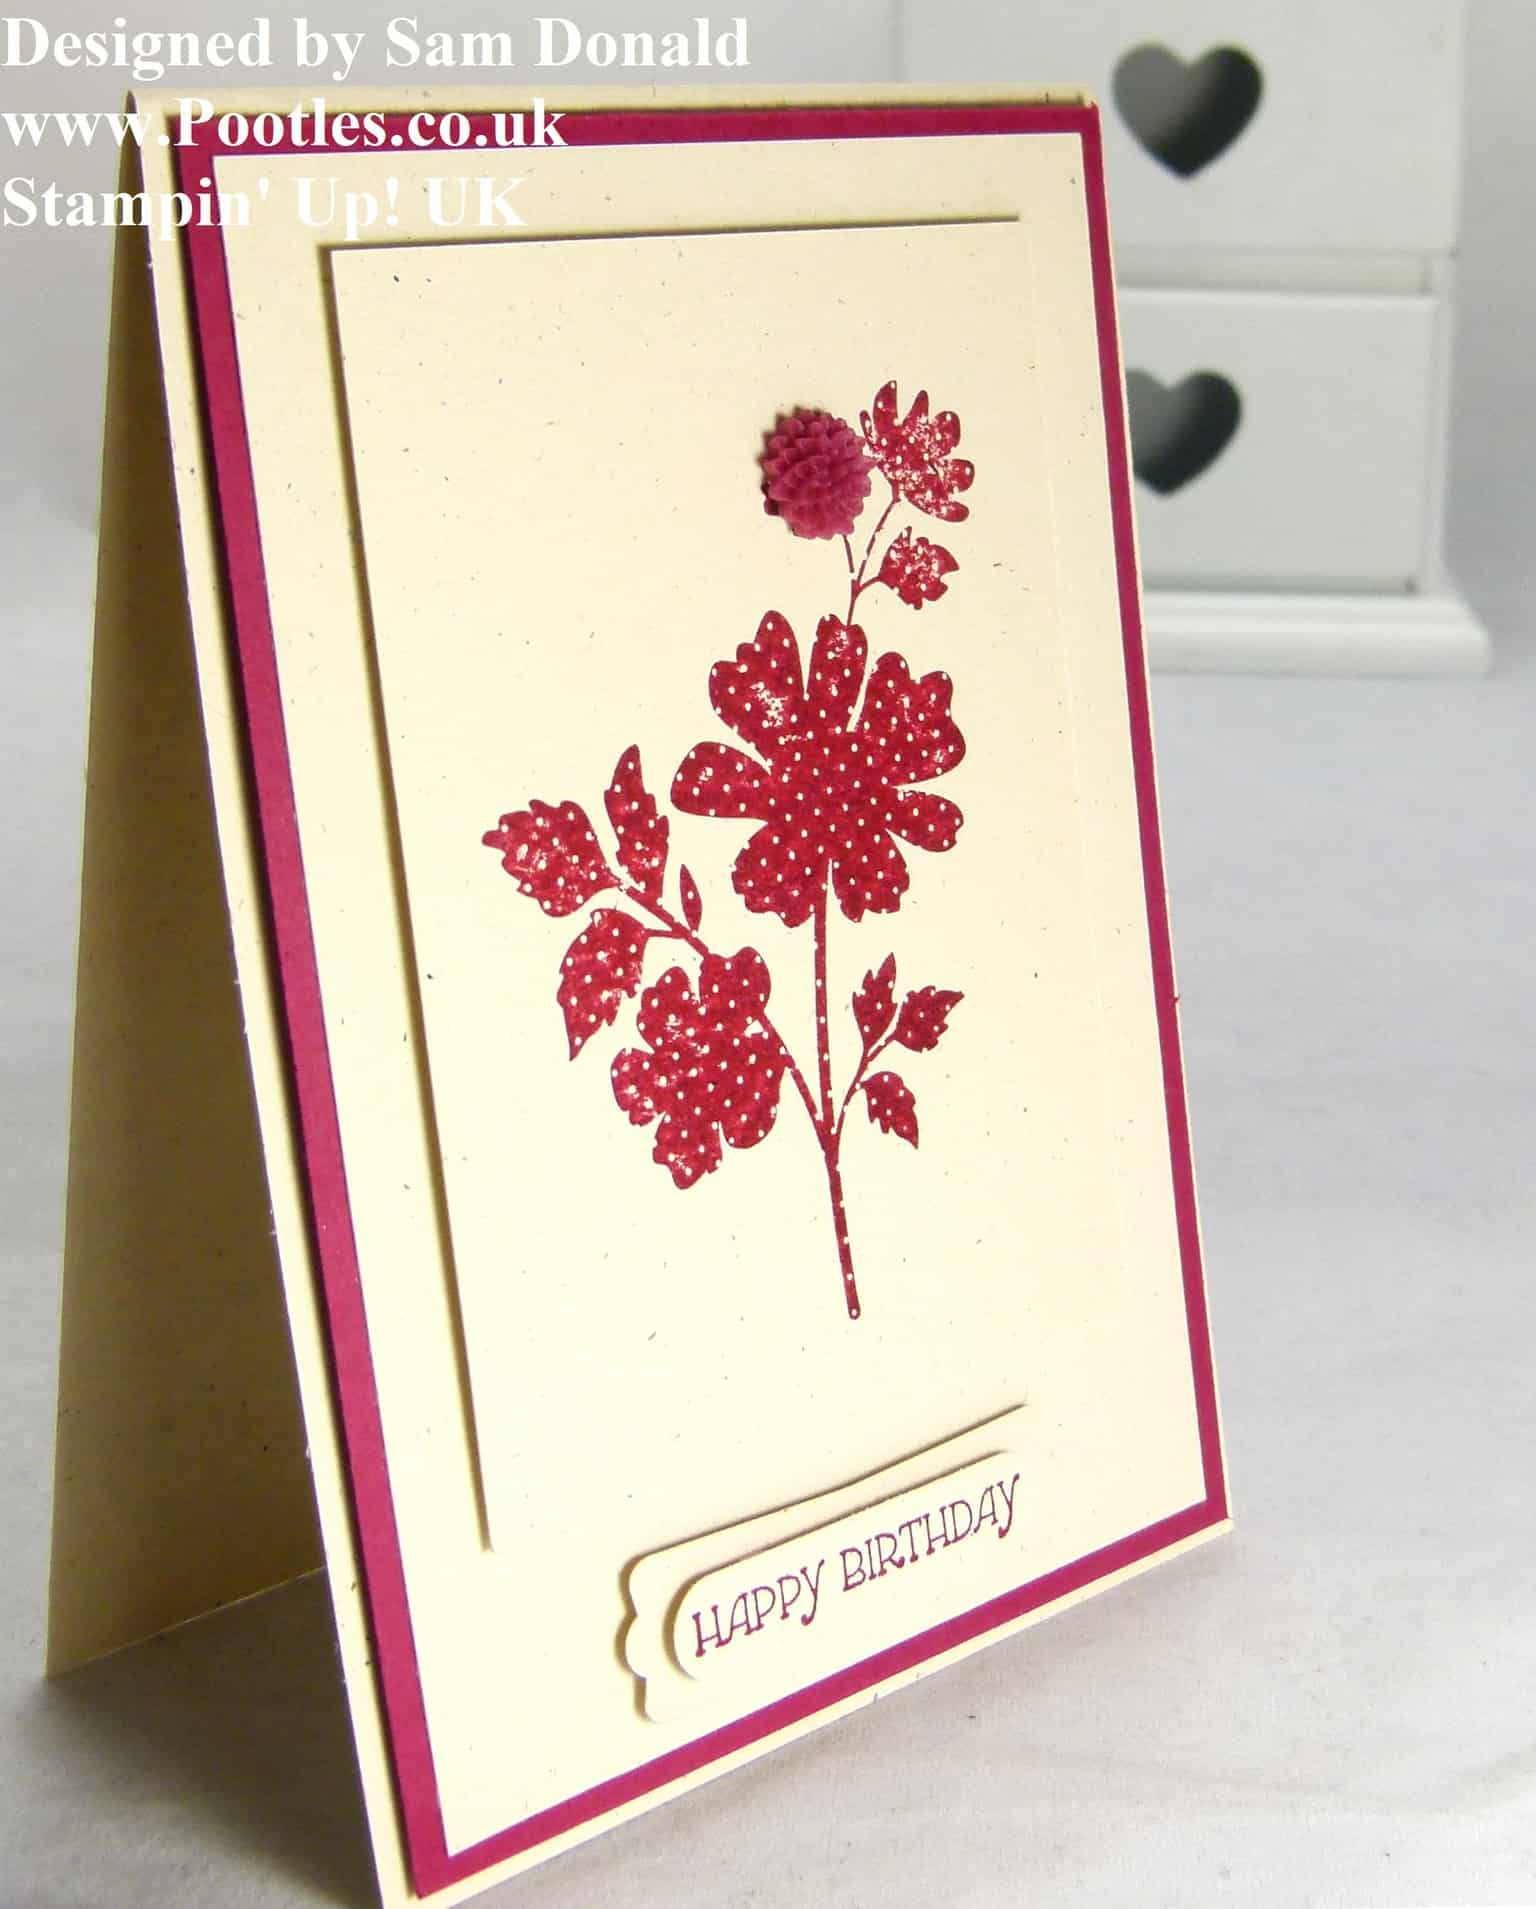 Pootles Stampin Up UK Gifts of Kindness Birthday Card